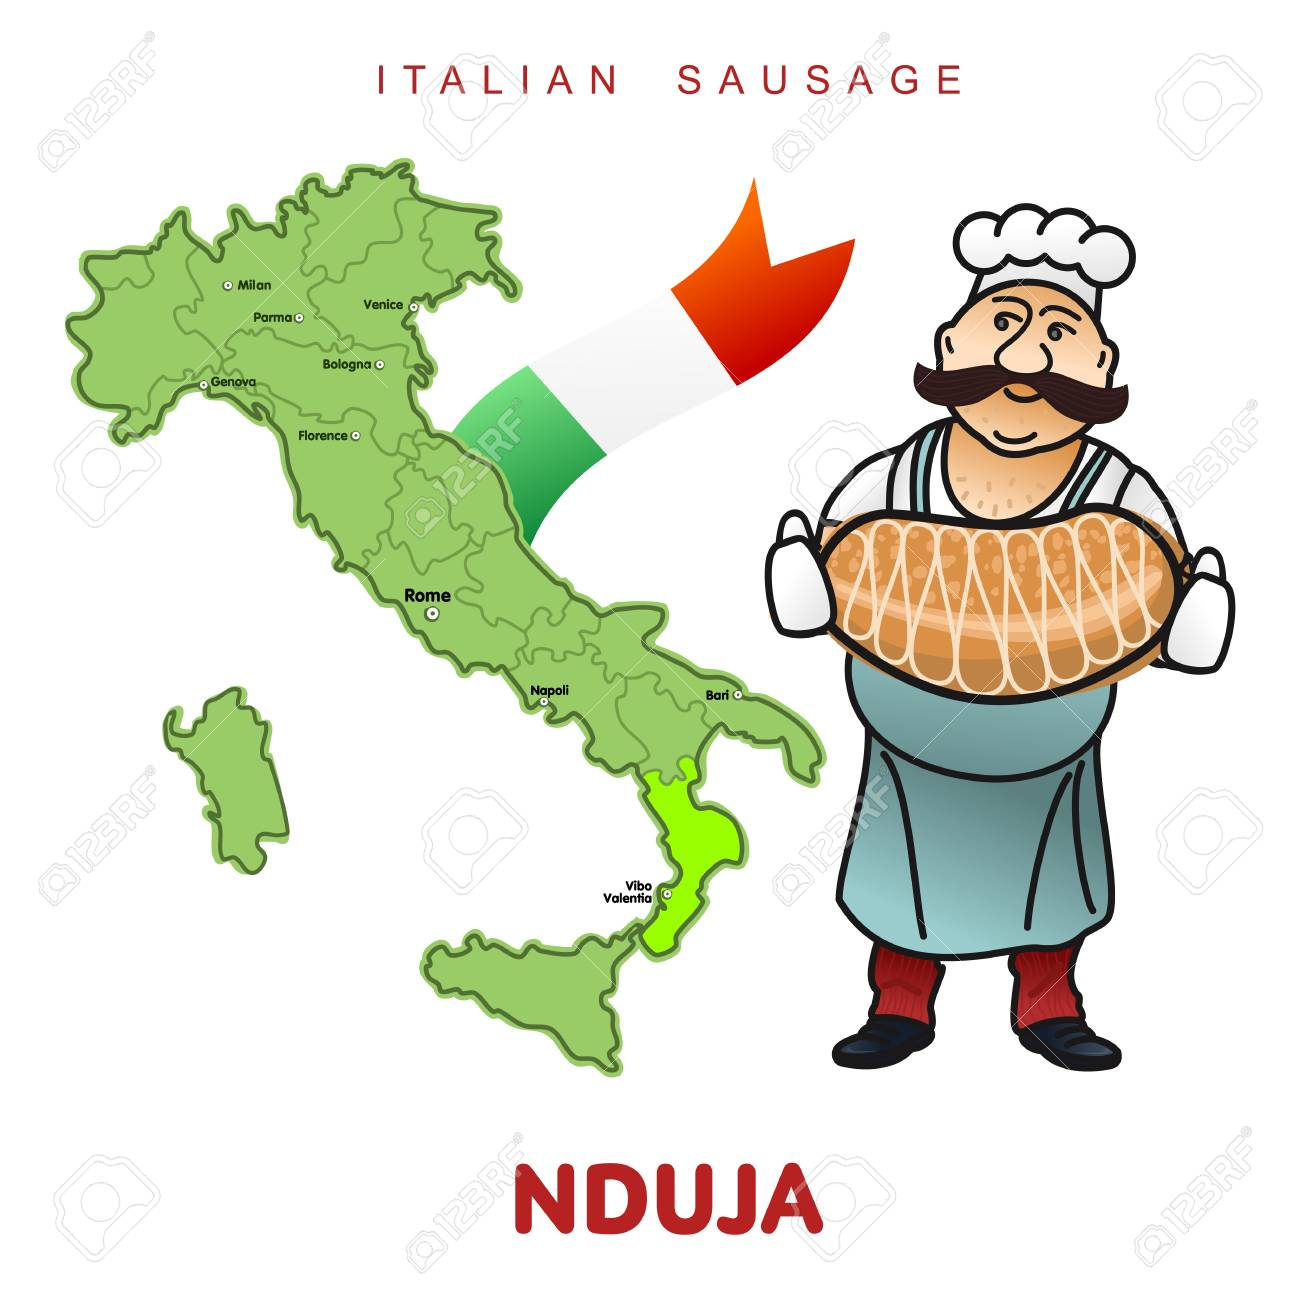 Chef With Italian Sausage And Italian Map Vector Illustration